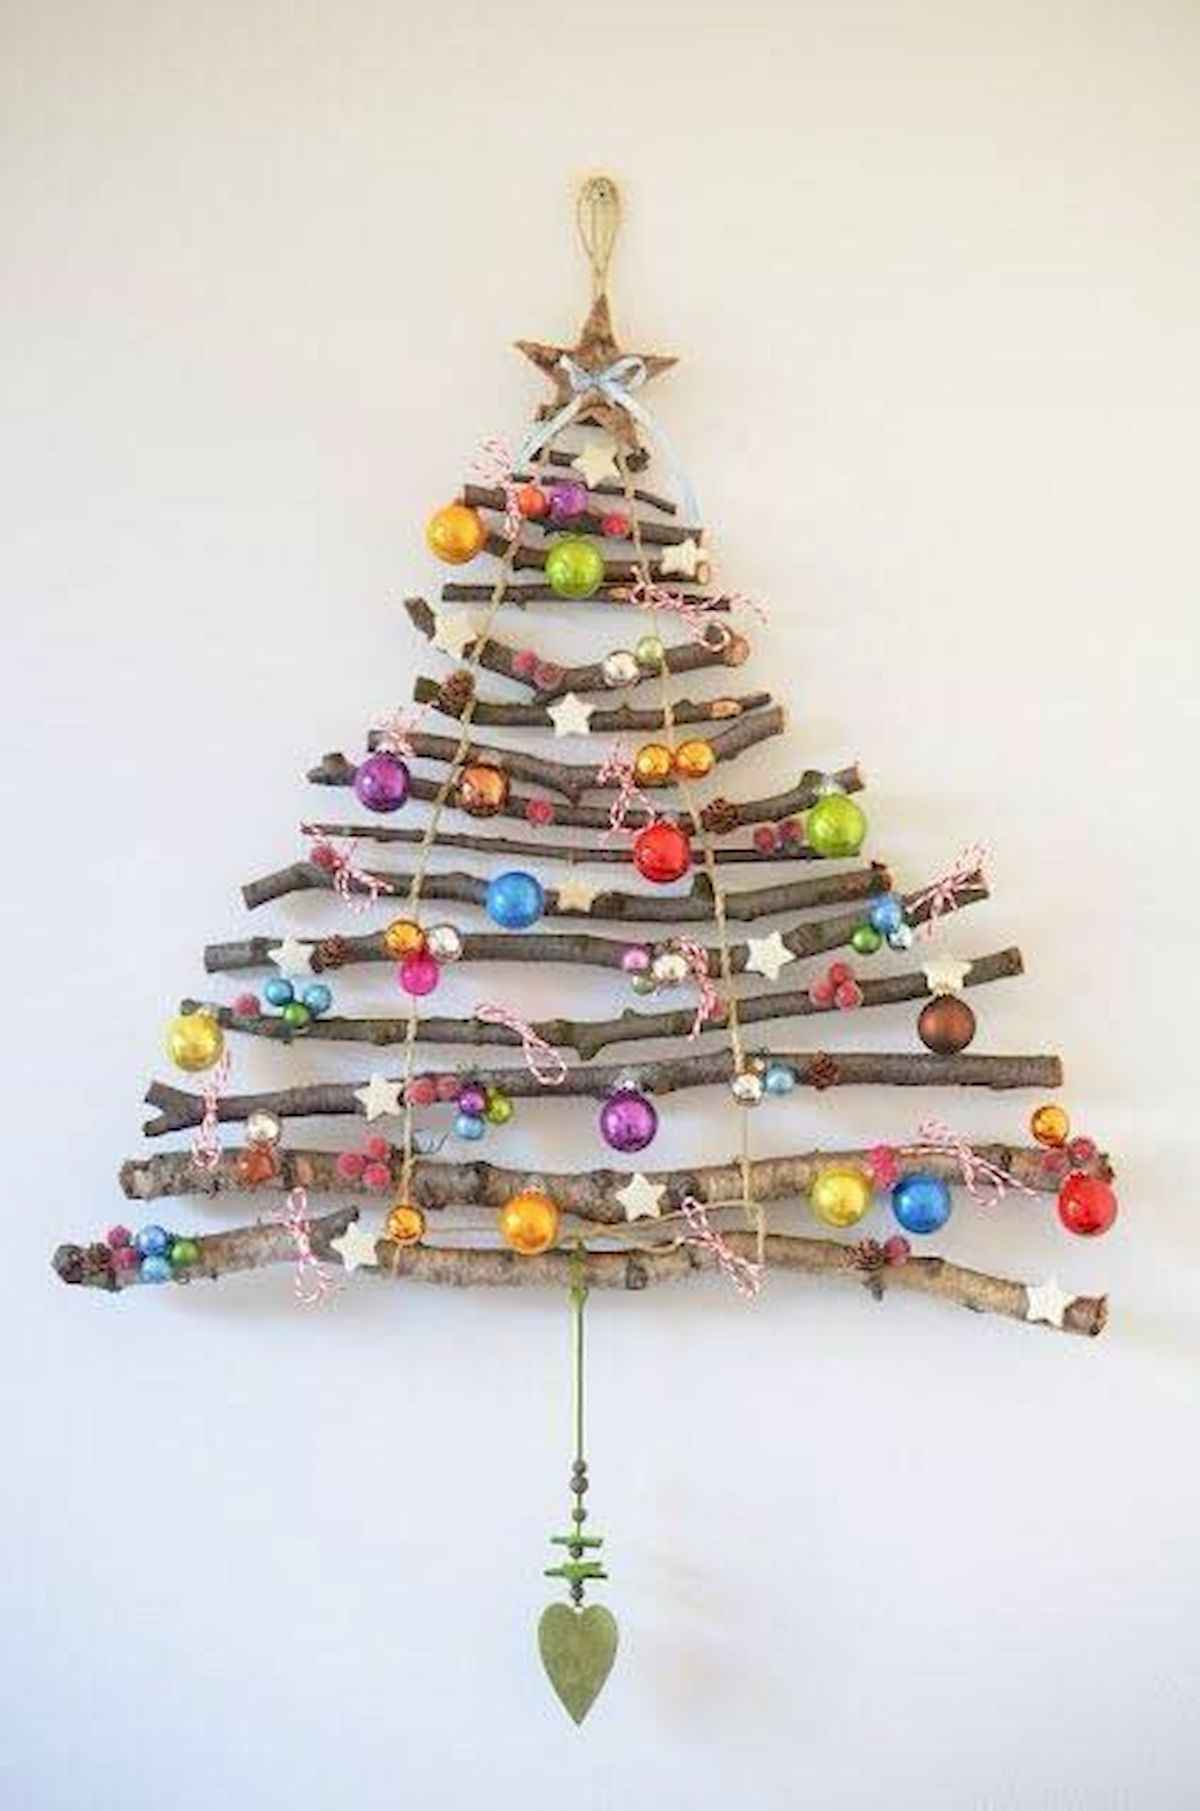 60 awesome wall art christmas ideas decorations (22)